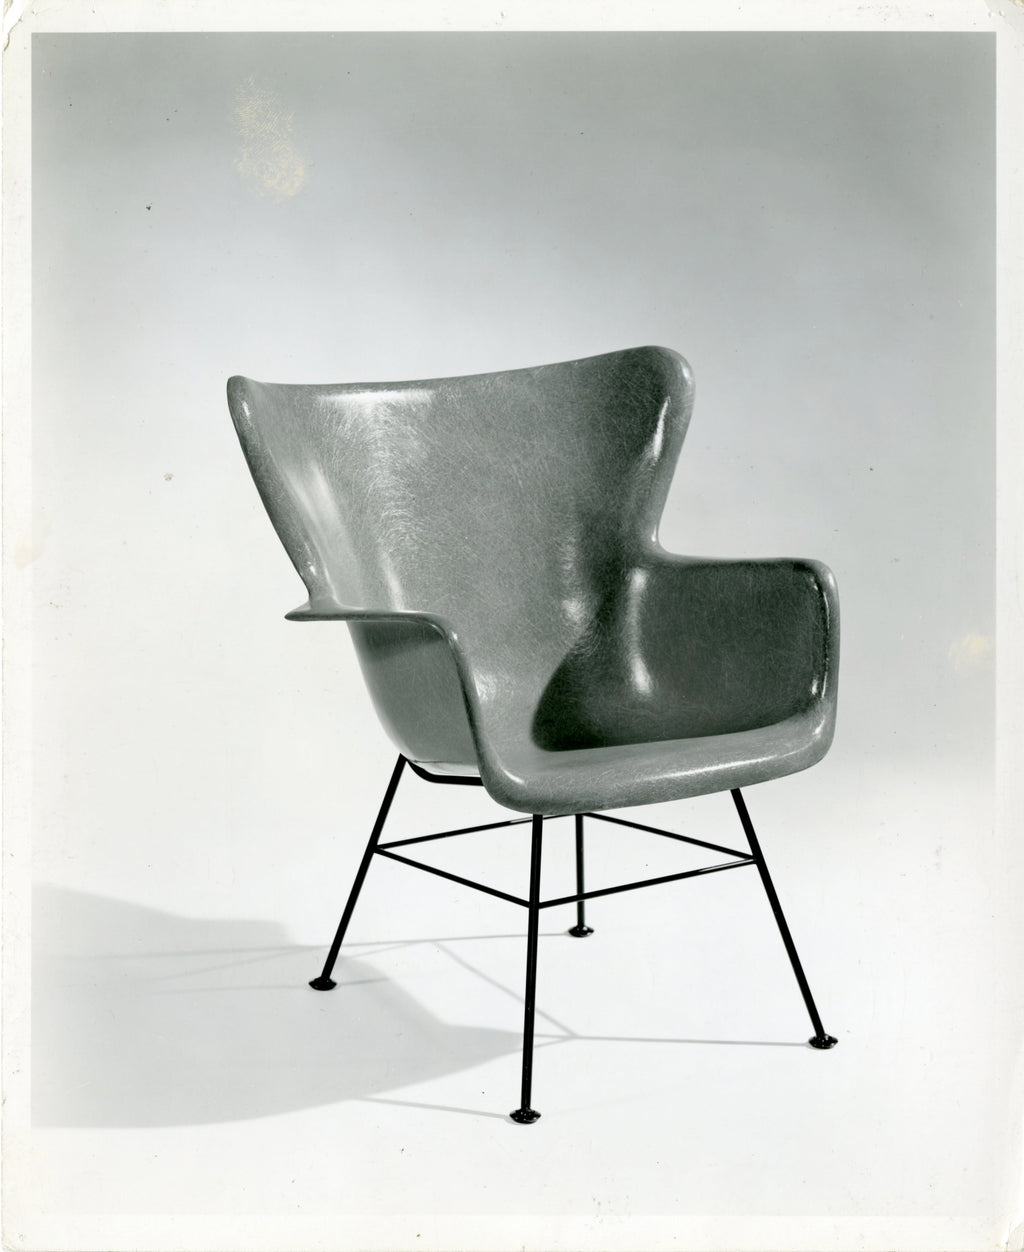 Lawrence Peabody Fiberglass Chair for Selig